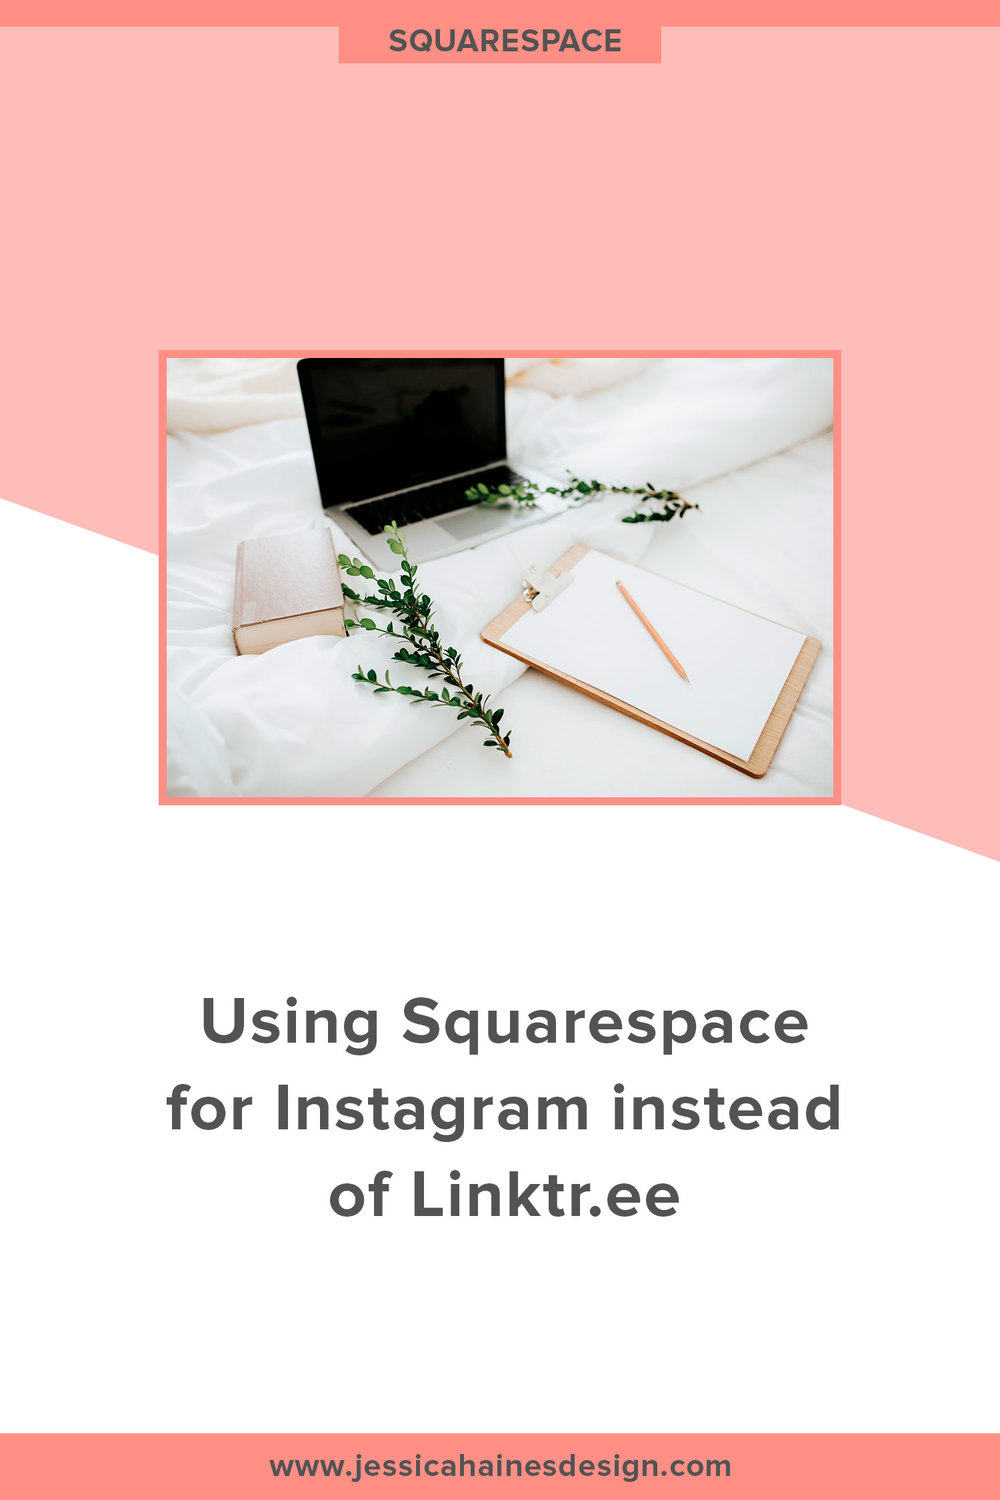 Using Squarespace for an Instagram landing page instead of Linktree. You only have one link on your Instagram bio, so you need to make it count! Click through to find out how you can set up your own custom landing page on Squarespace to maximize that link, and why you should do it this way instead of using Linktr.ee | www.jessicahainesdesign.com